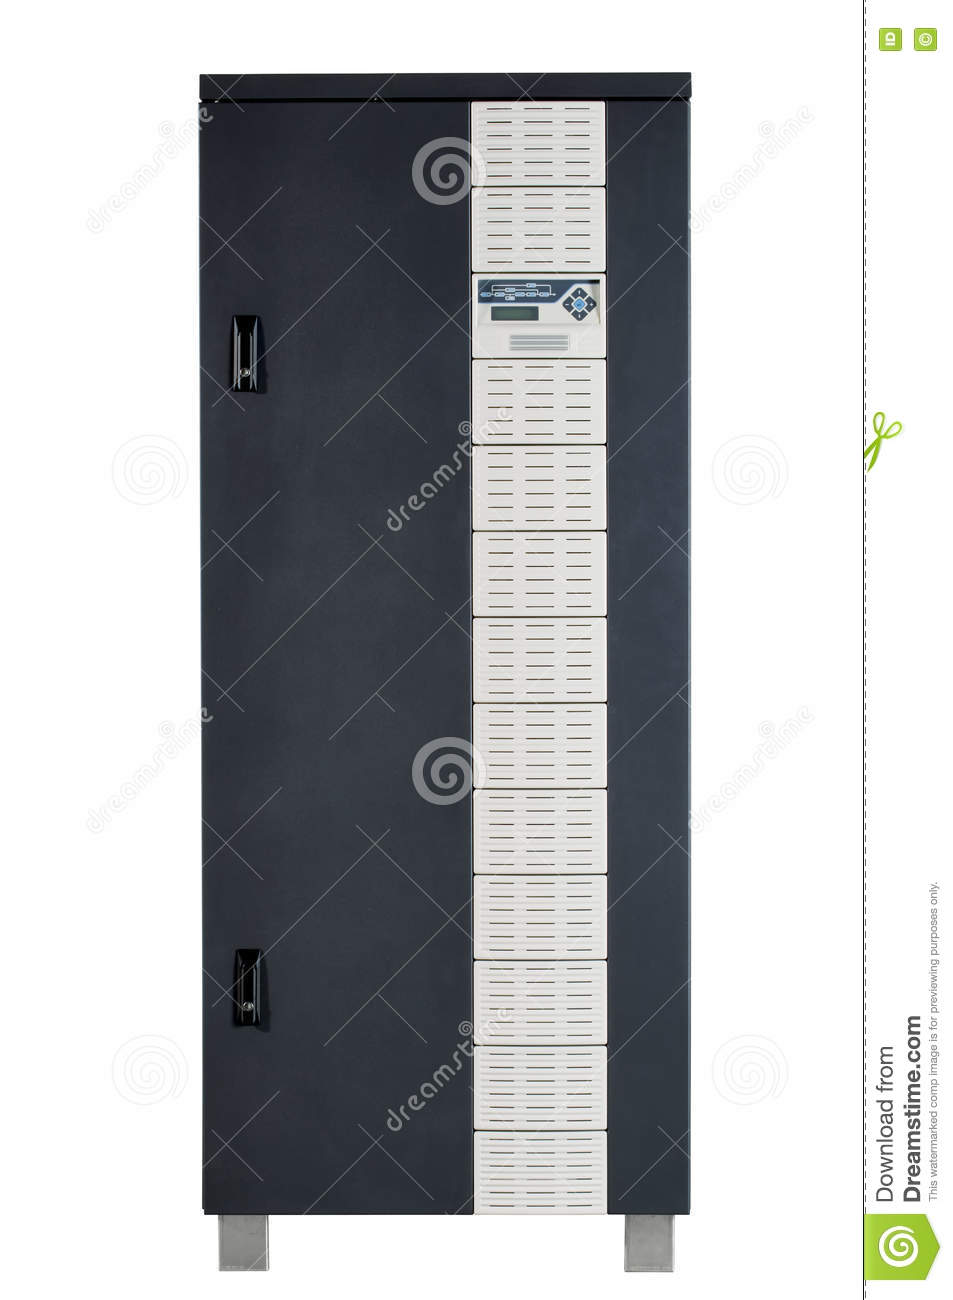 could be electrical circuit breaker fuse box control panel server power source or other electronics enclosure